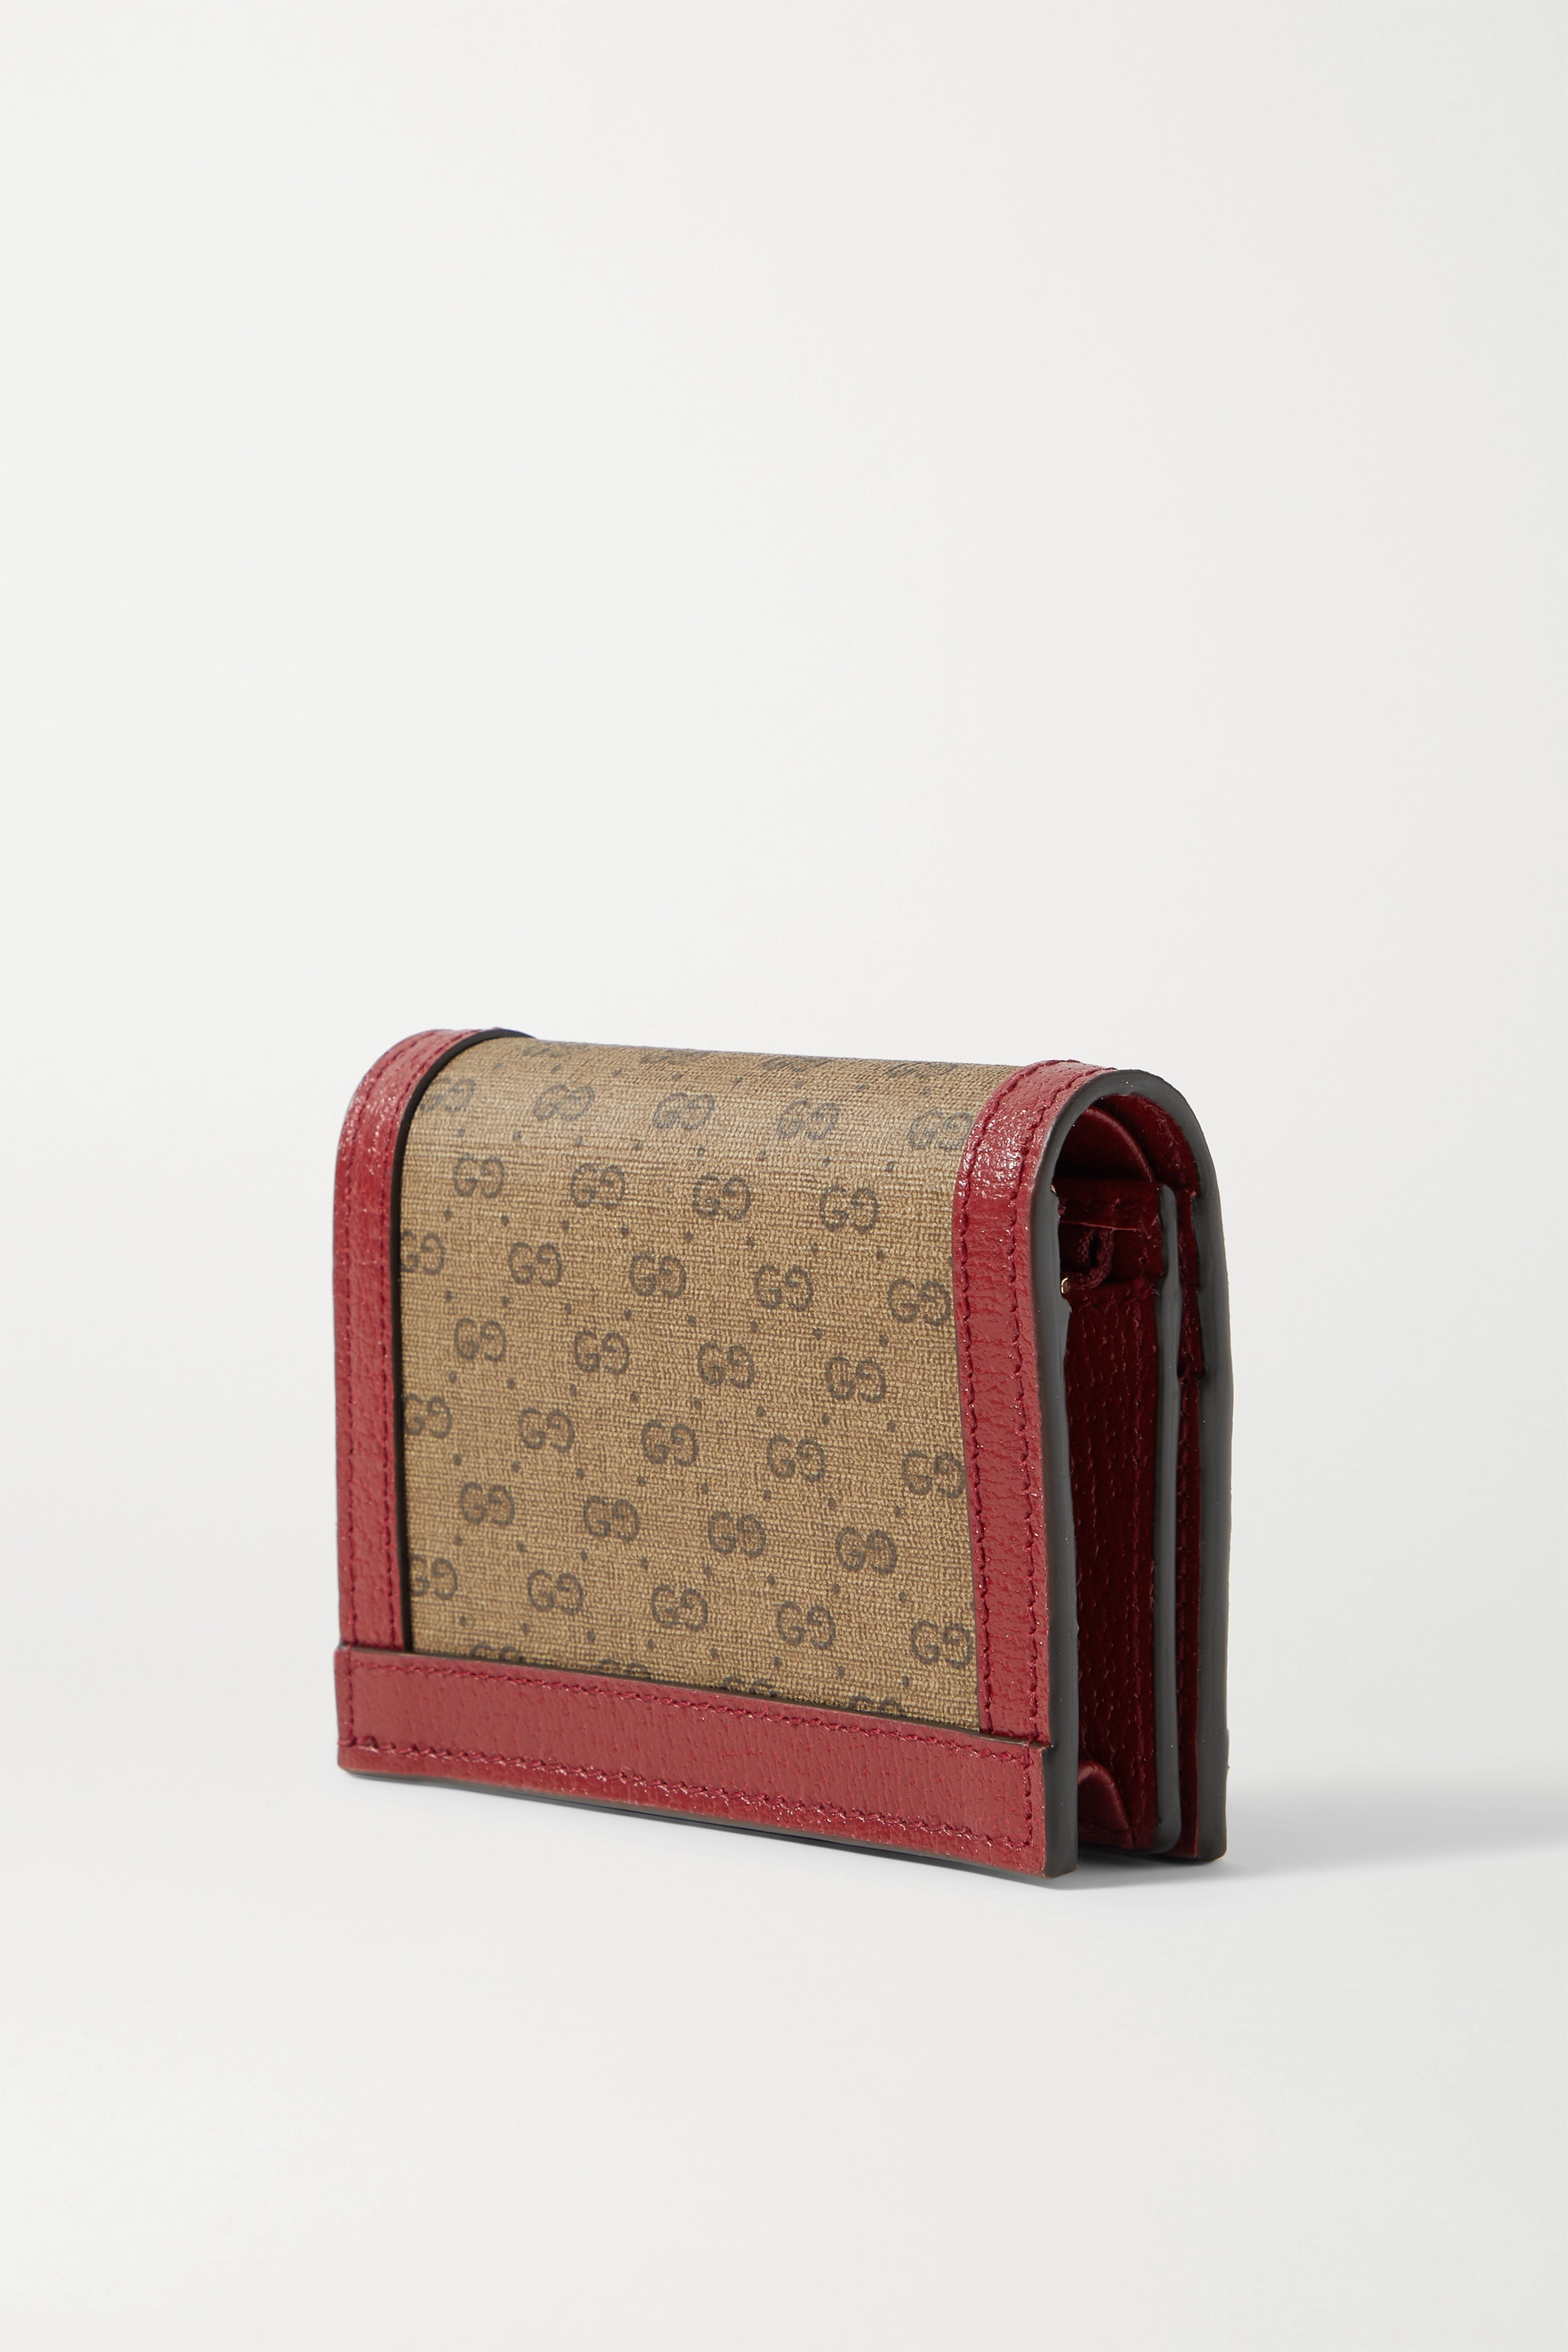 Gucci + Doraemon textured leather-trimmed printed coated-canvas wallet